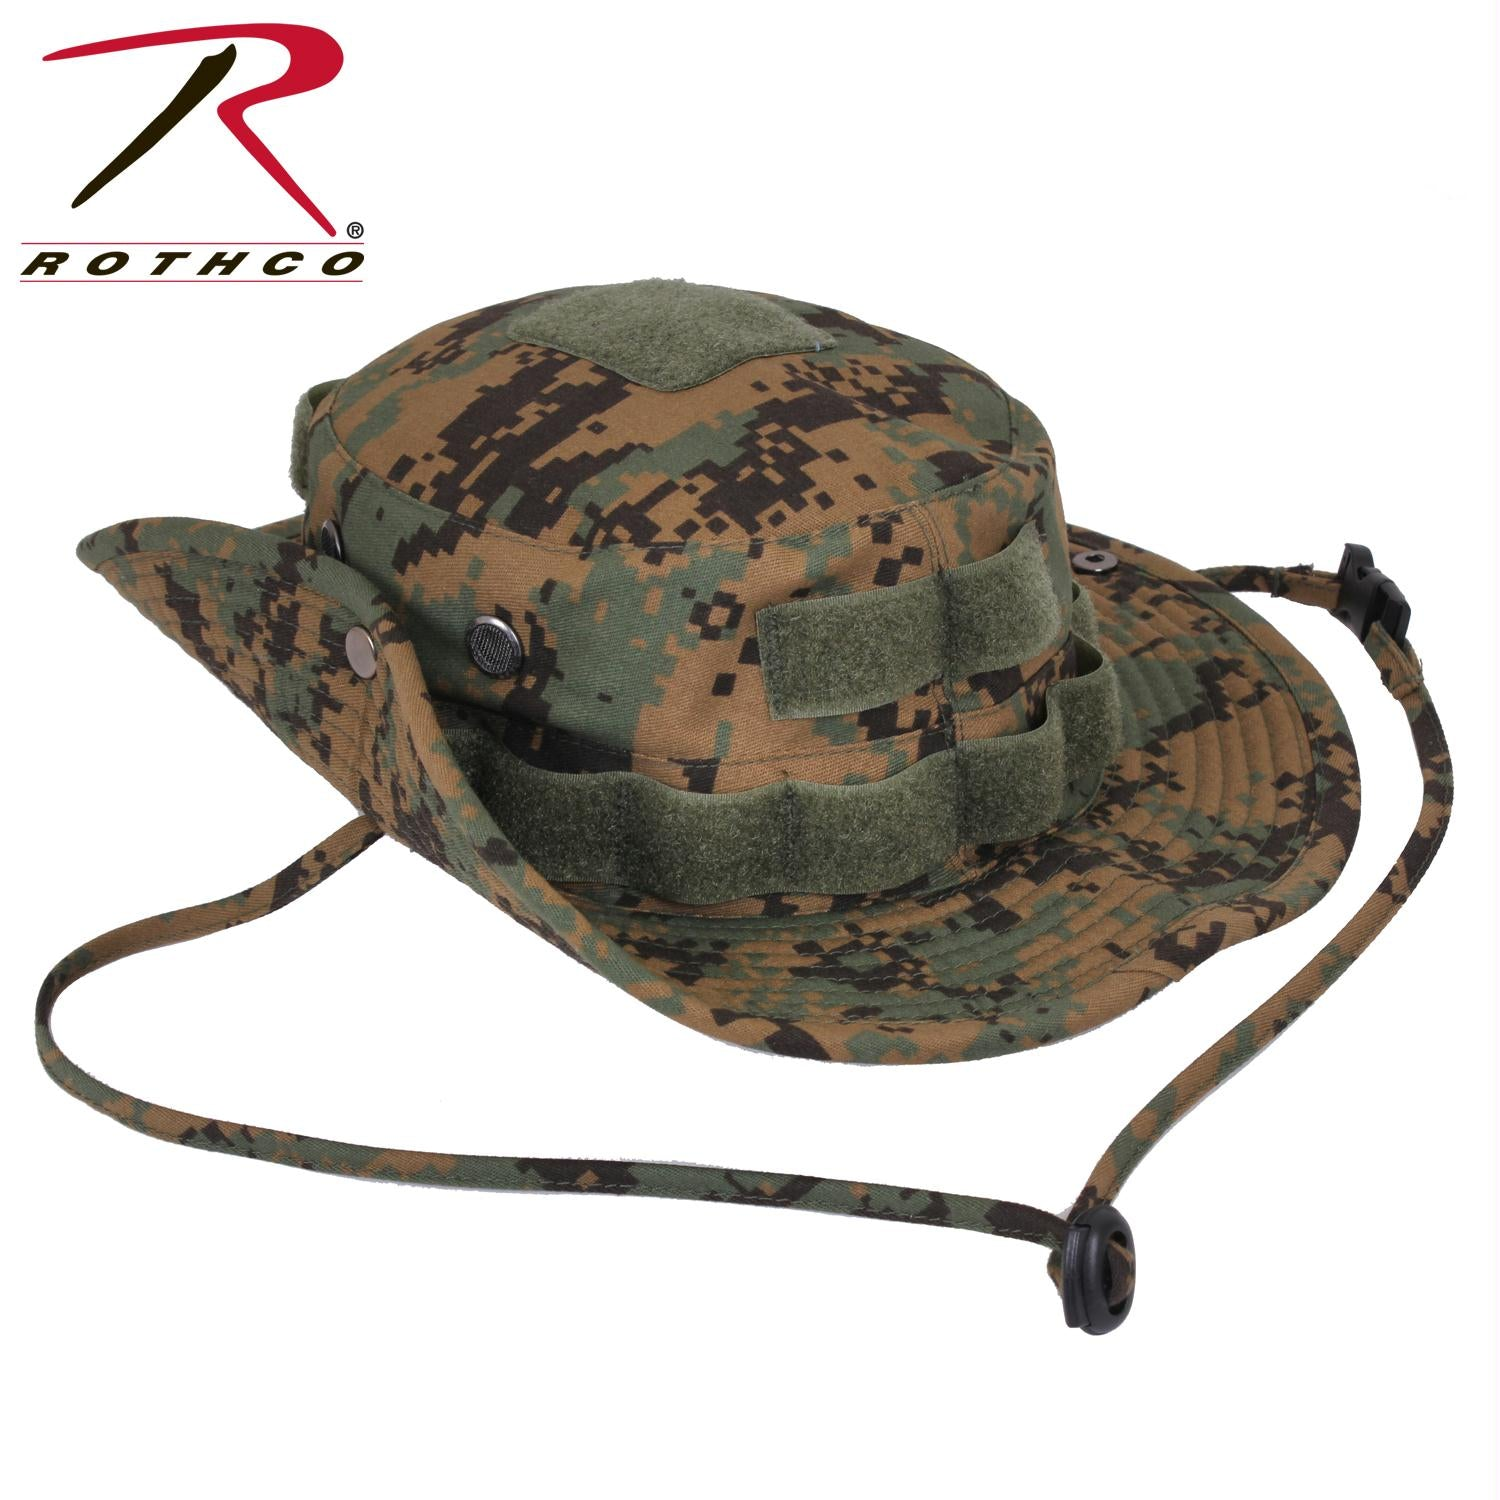 Rothco Tactical Boonie Hat - Woodland Digital Camo / 7 1/4